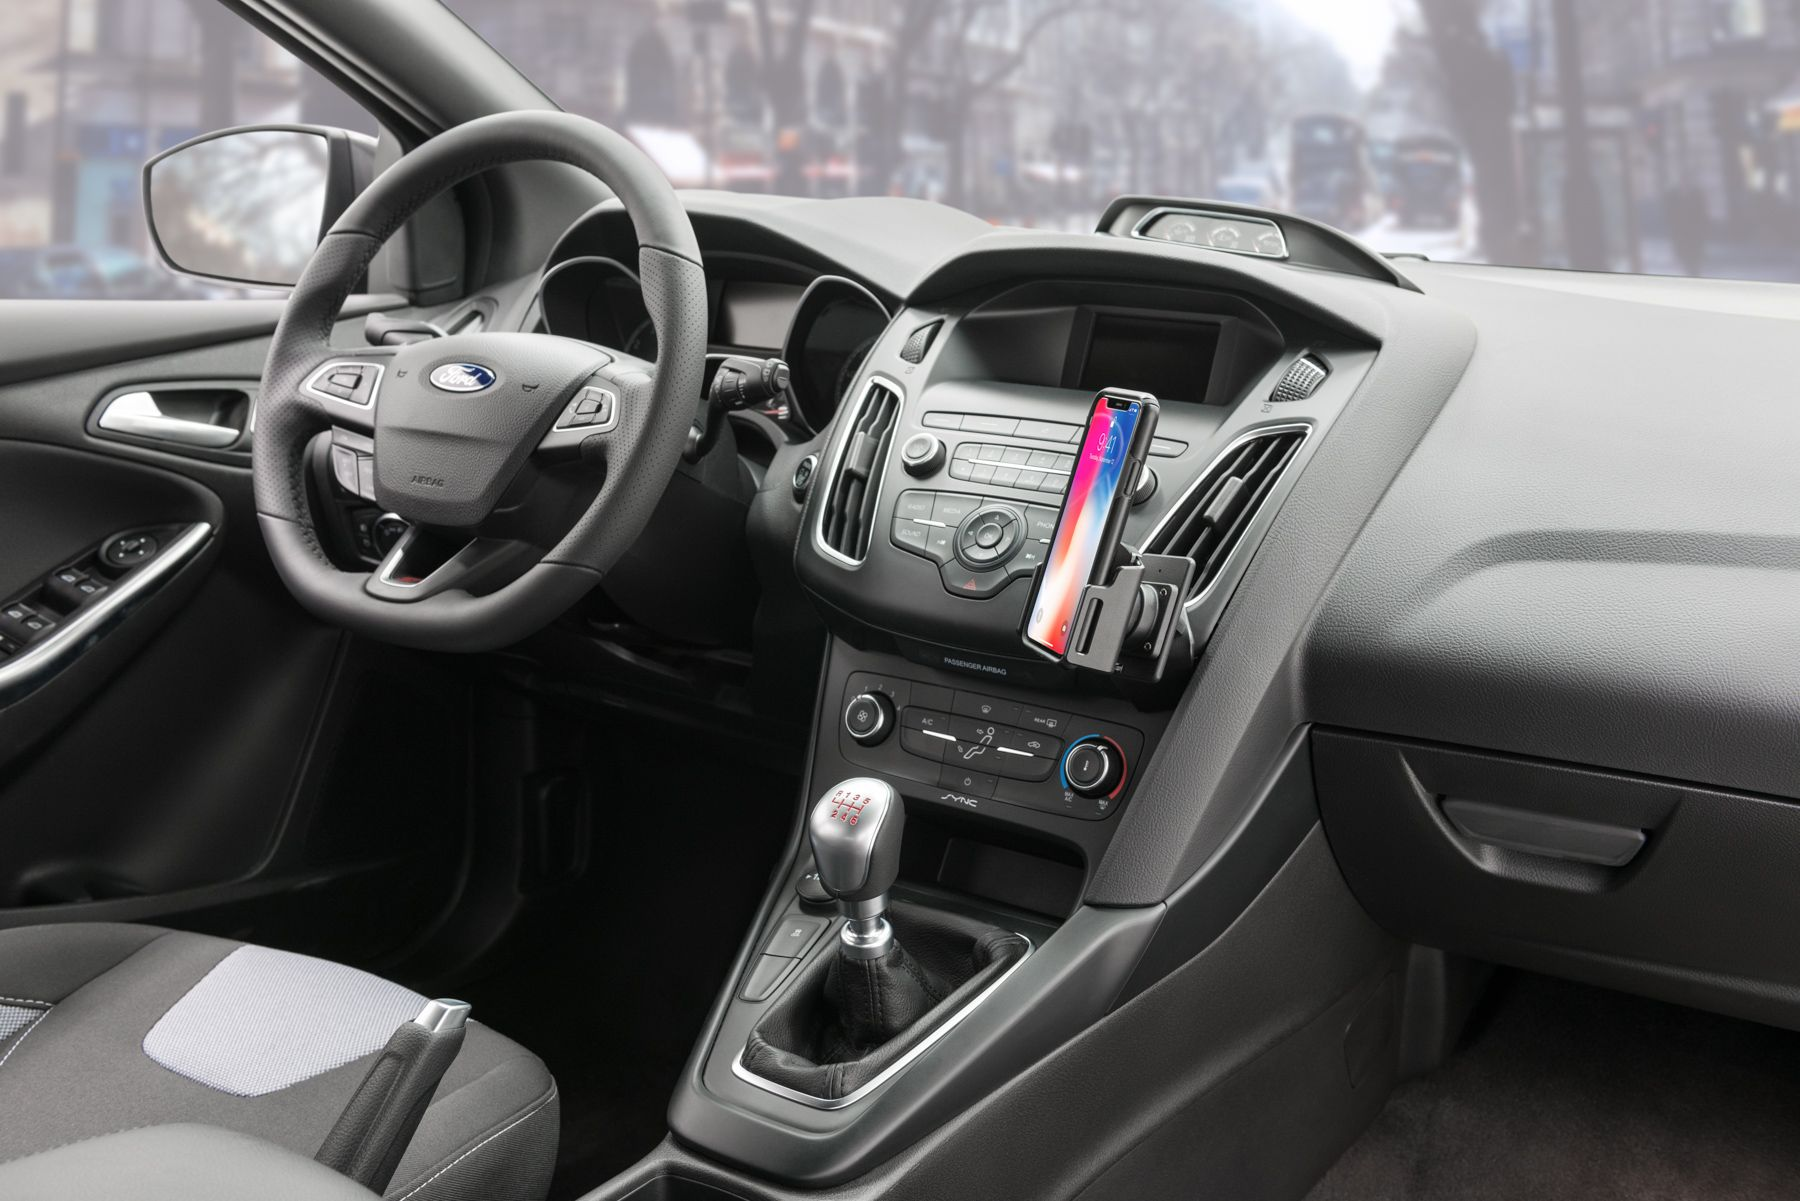 Upgrade Your Ford Focus With A Proclip Ford Ford Focus Ford